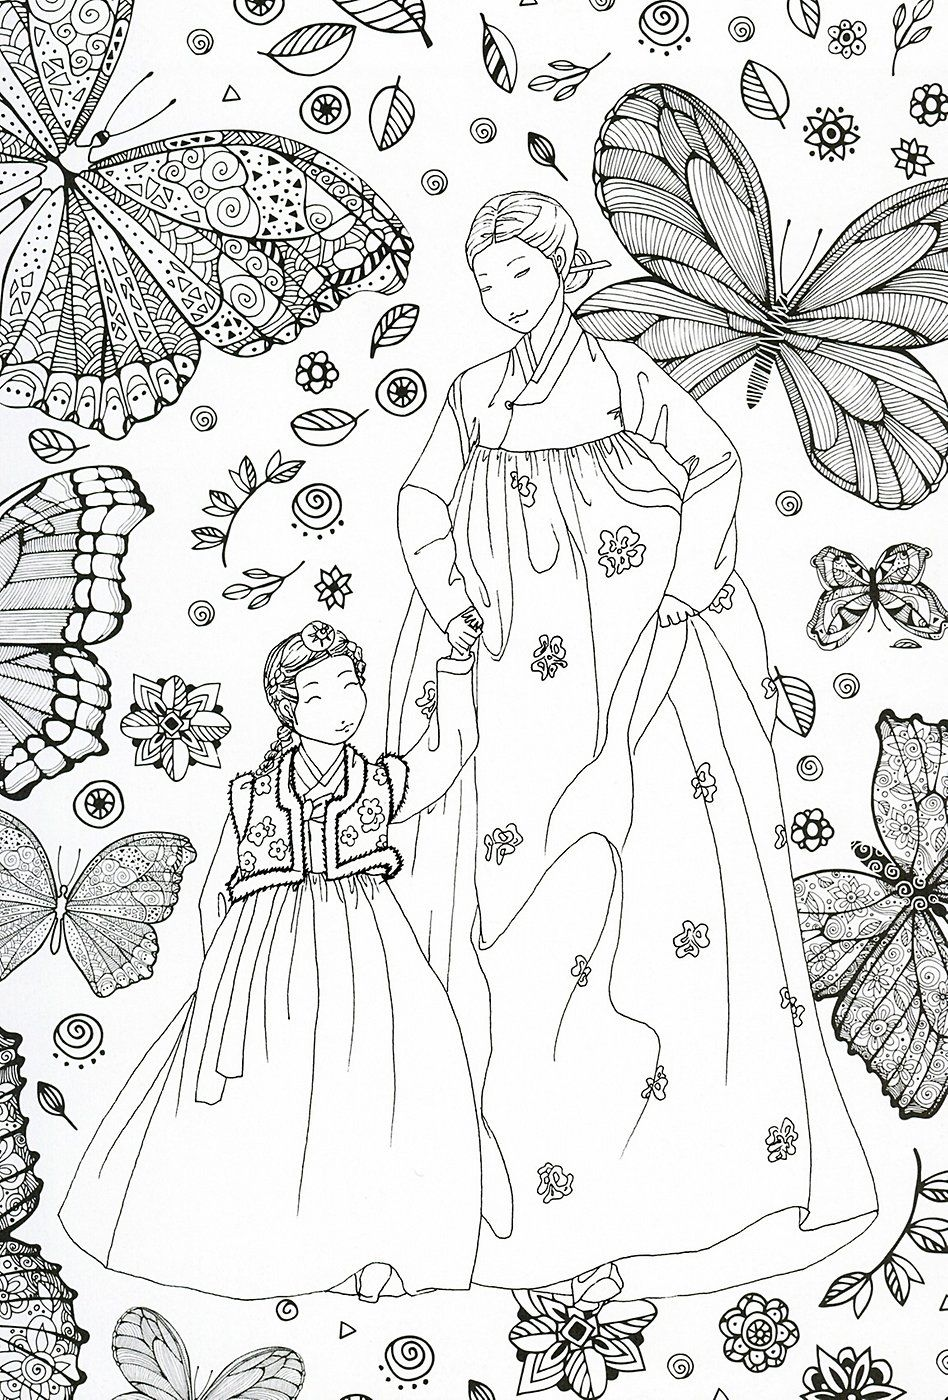 The Day We Finally Meet Korean Coloring Book On Etsy